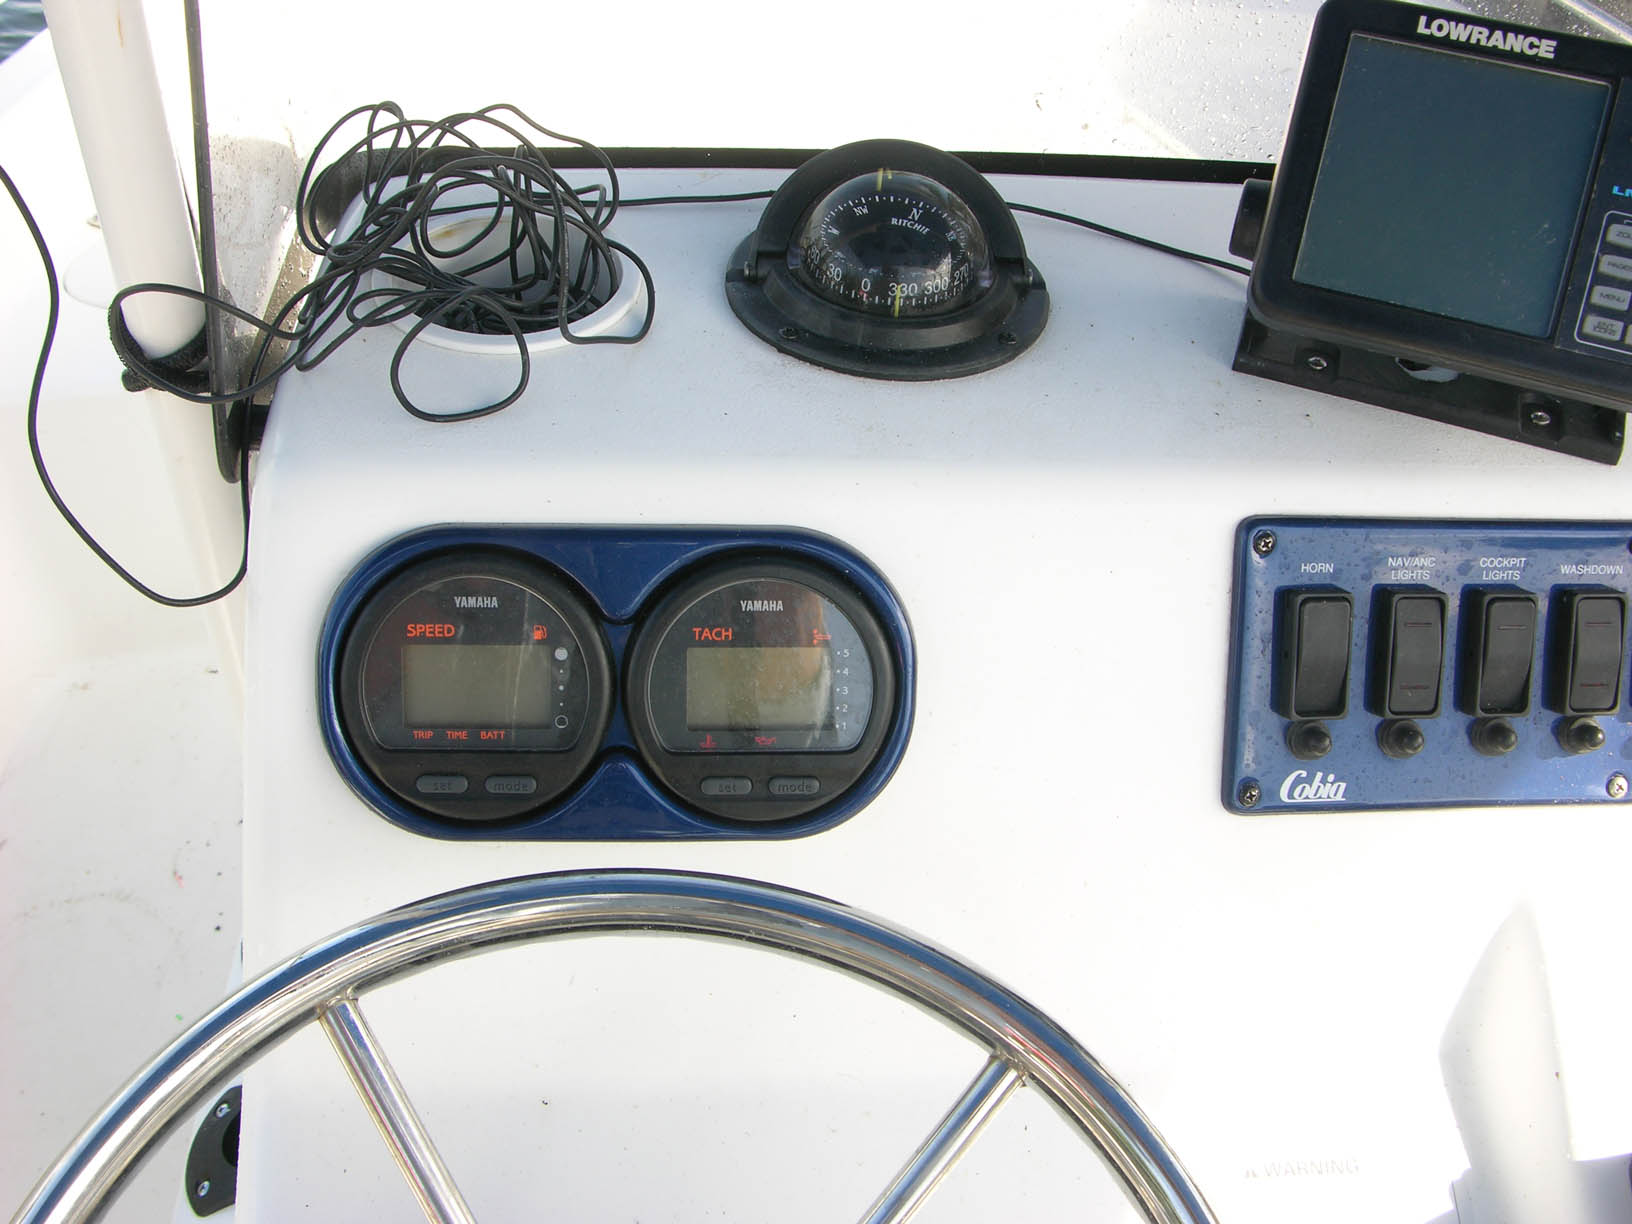 Yamaha Outboard Digital Gauge Wiring Diagram Solutions Teleflex Marine Gauges Motor Diagrams The